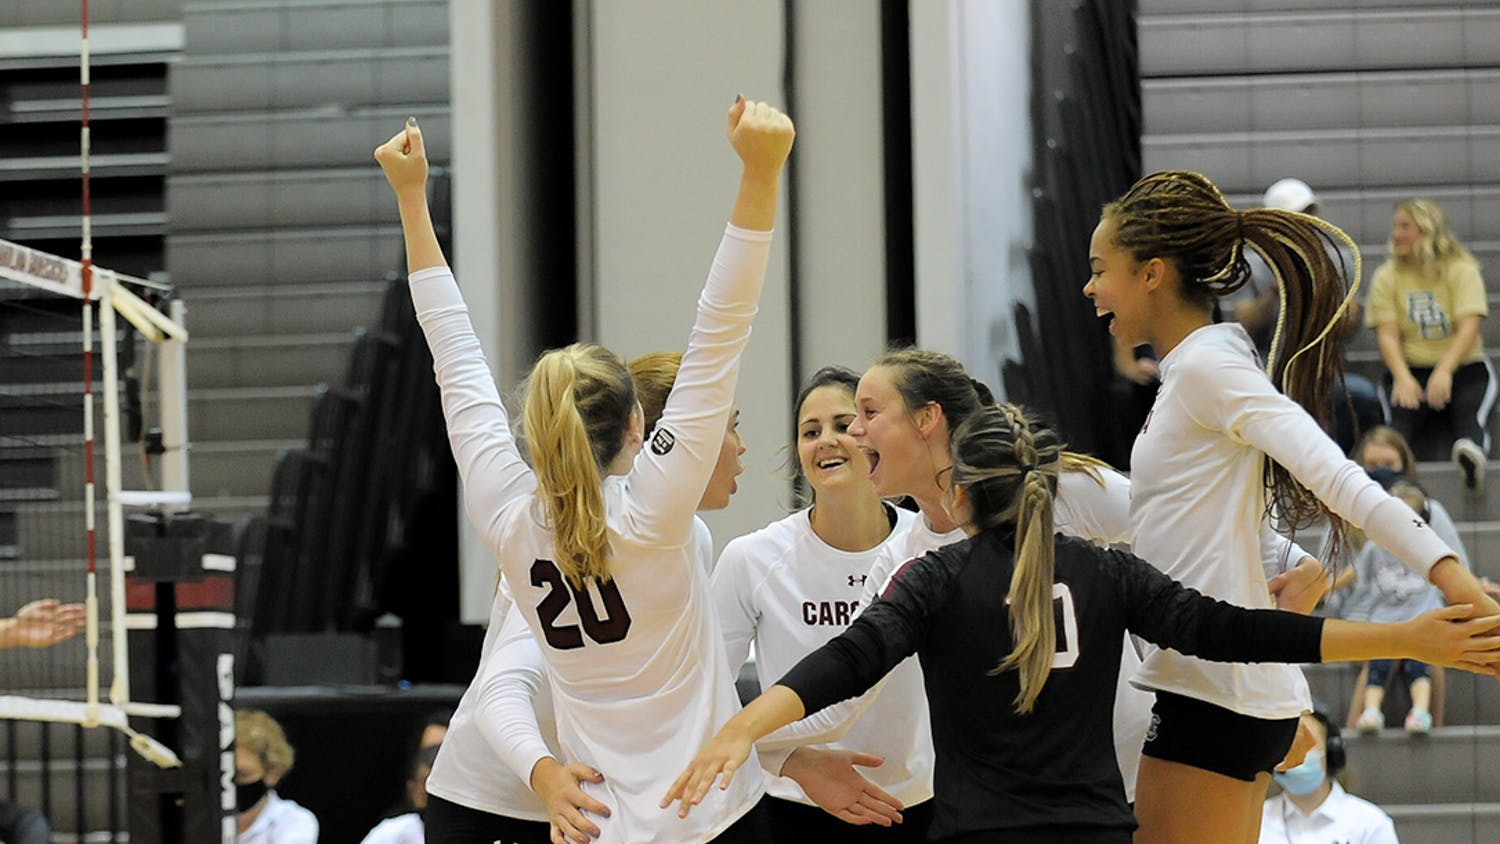 The Women's Volleyball team is greeted by teammates after their 3-0 victory against Alabama. This win follows the loss against Alabama on the previous day.